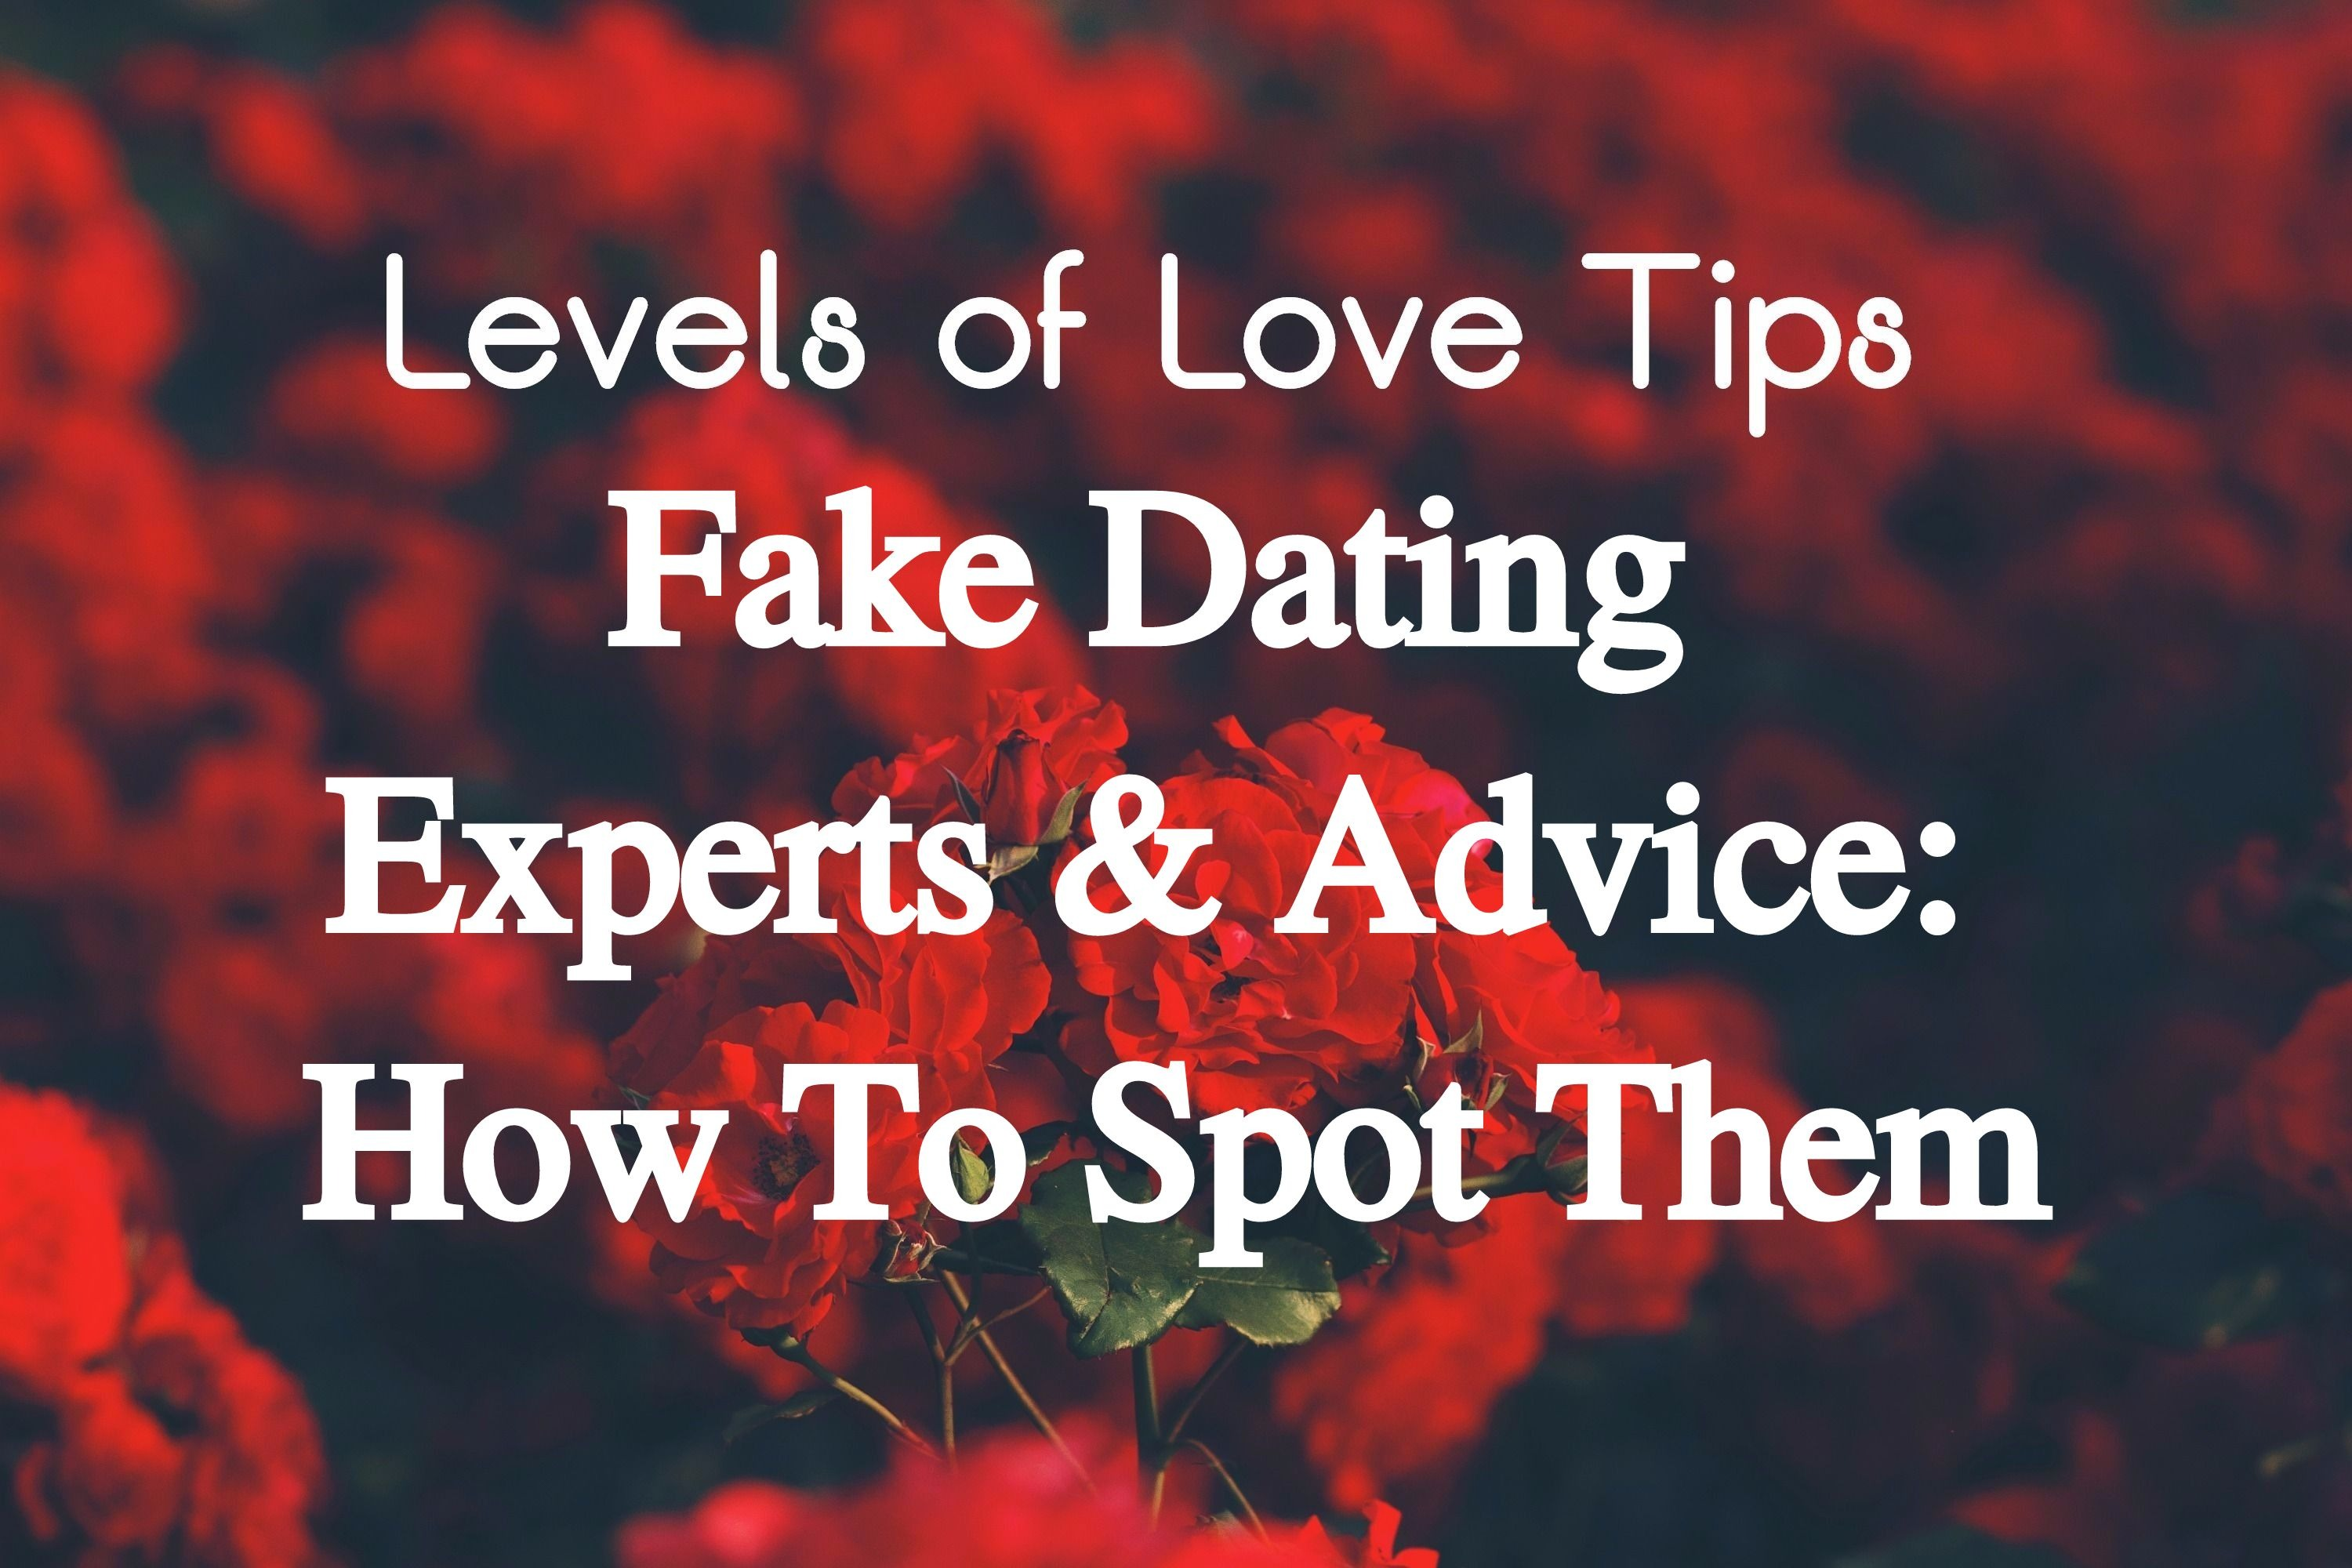 Experts advice on dating